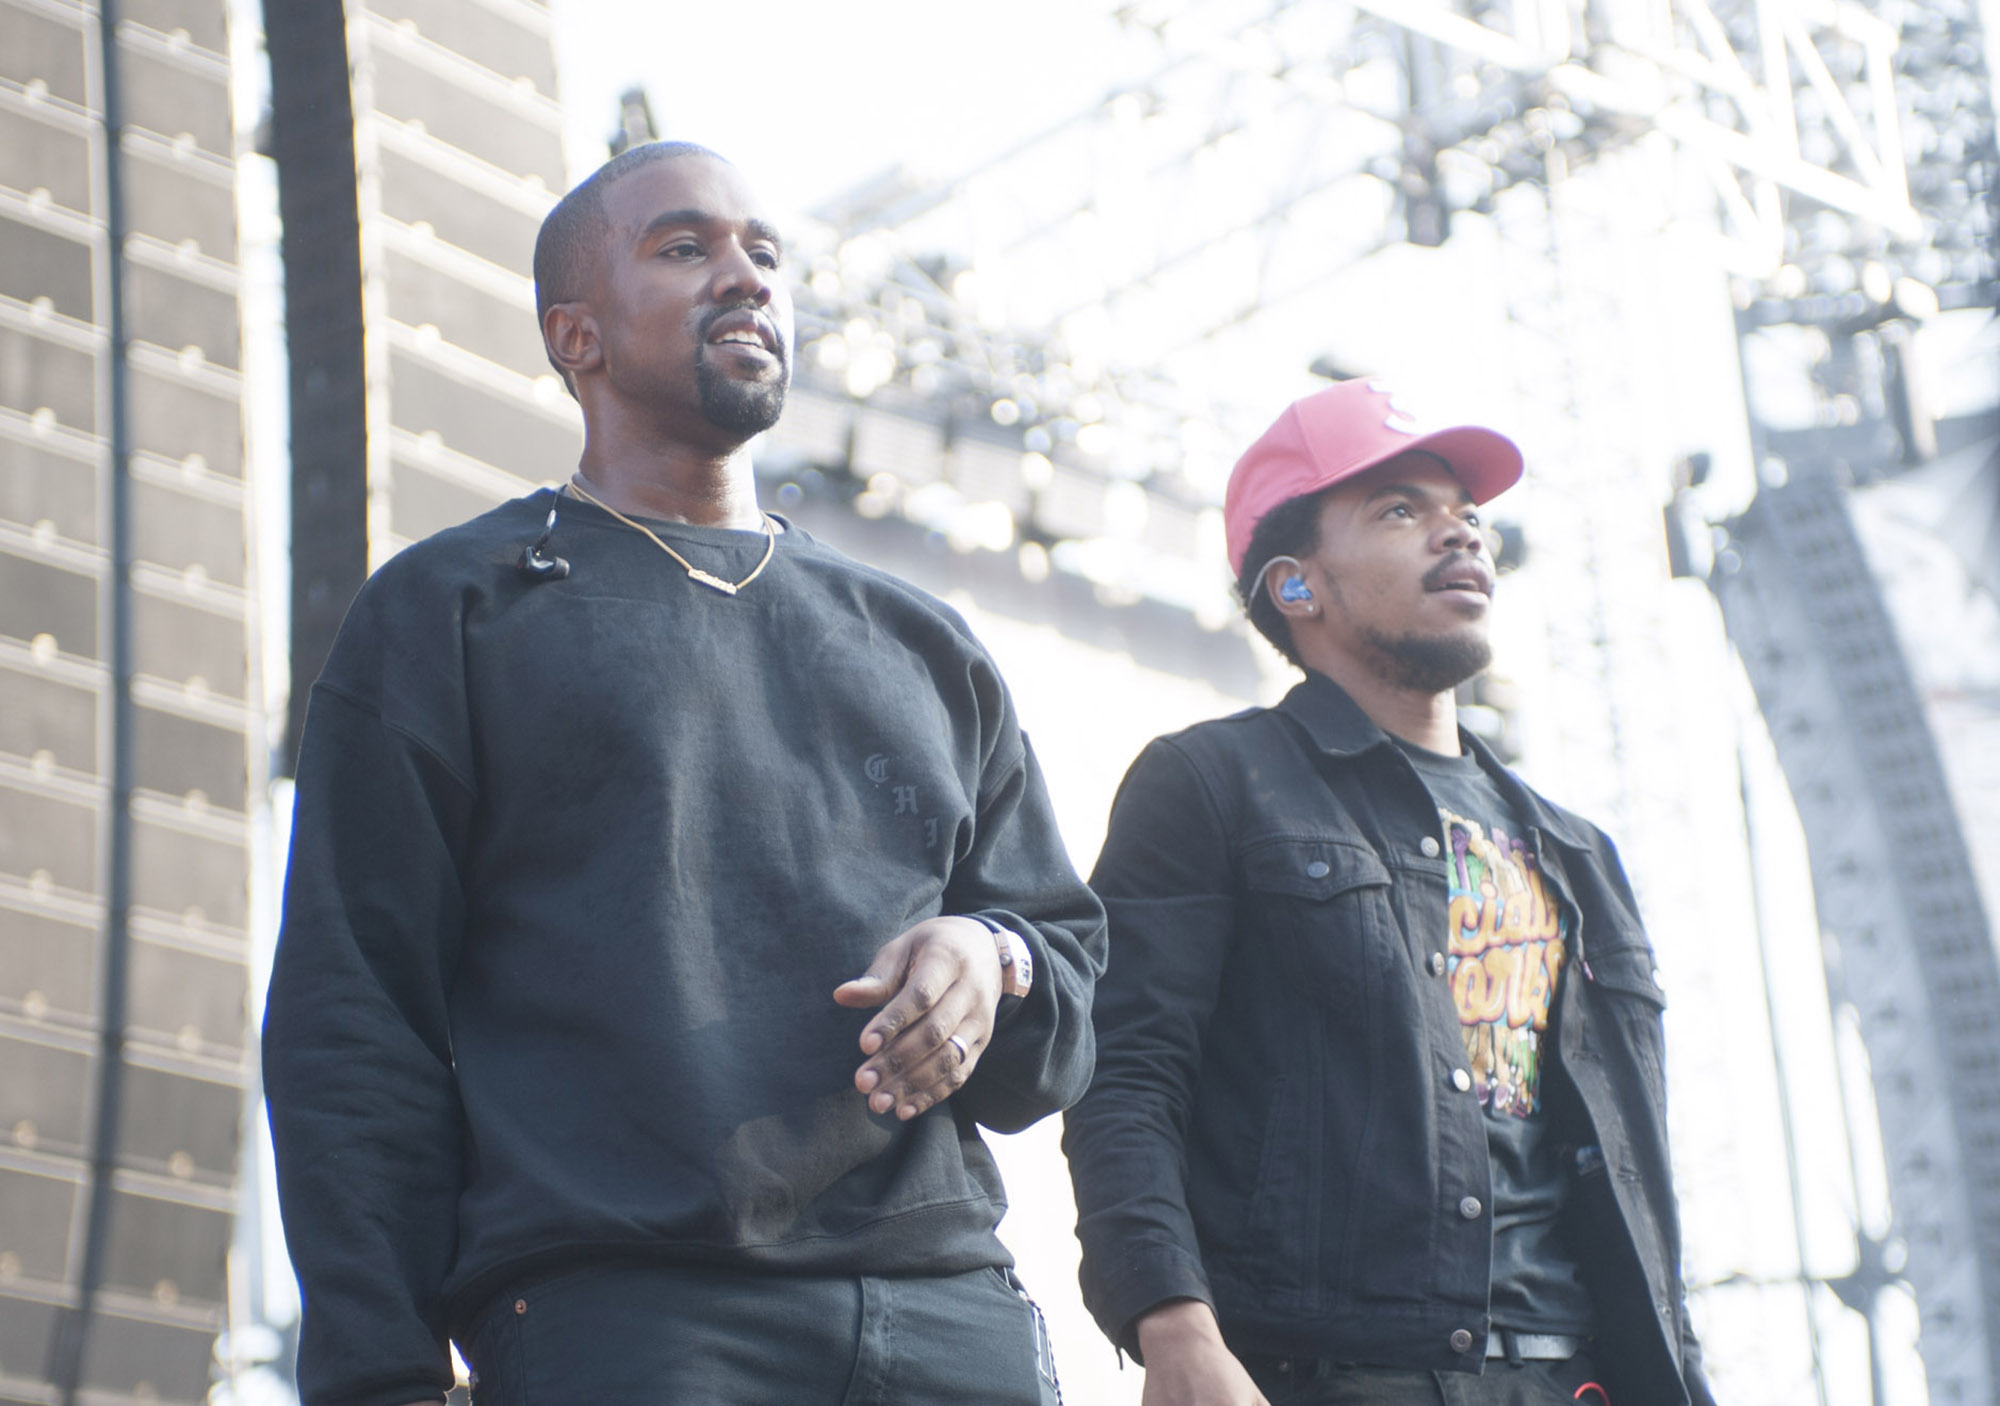 Kanye West and Chance the Rapper at the Magnificent Coloring Day Festival at Comiskey Park in Chicago, Illinois, September 24, 2016 . (Photo by Paul Natkin/Getty Images)